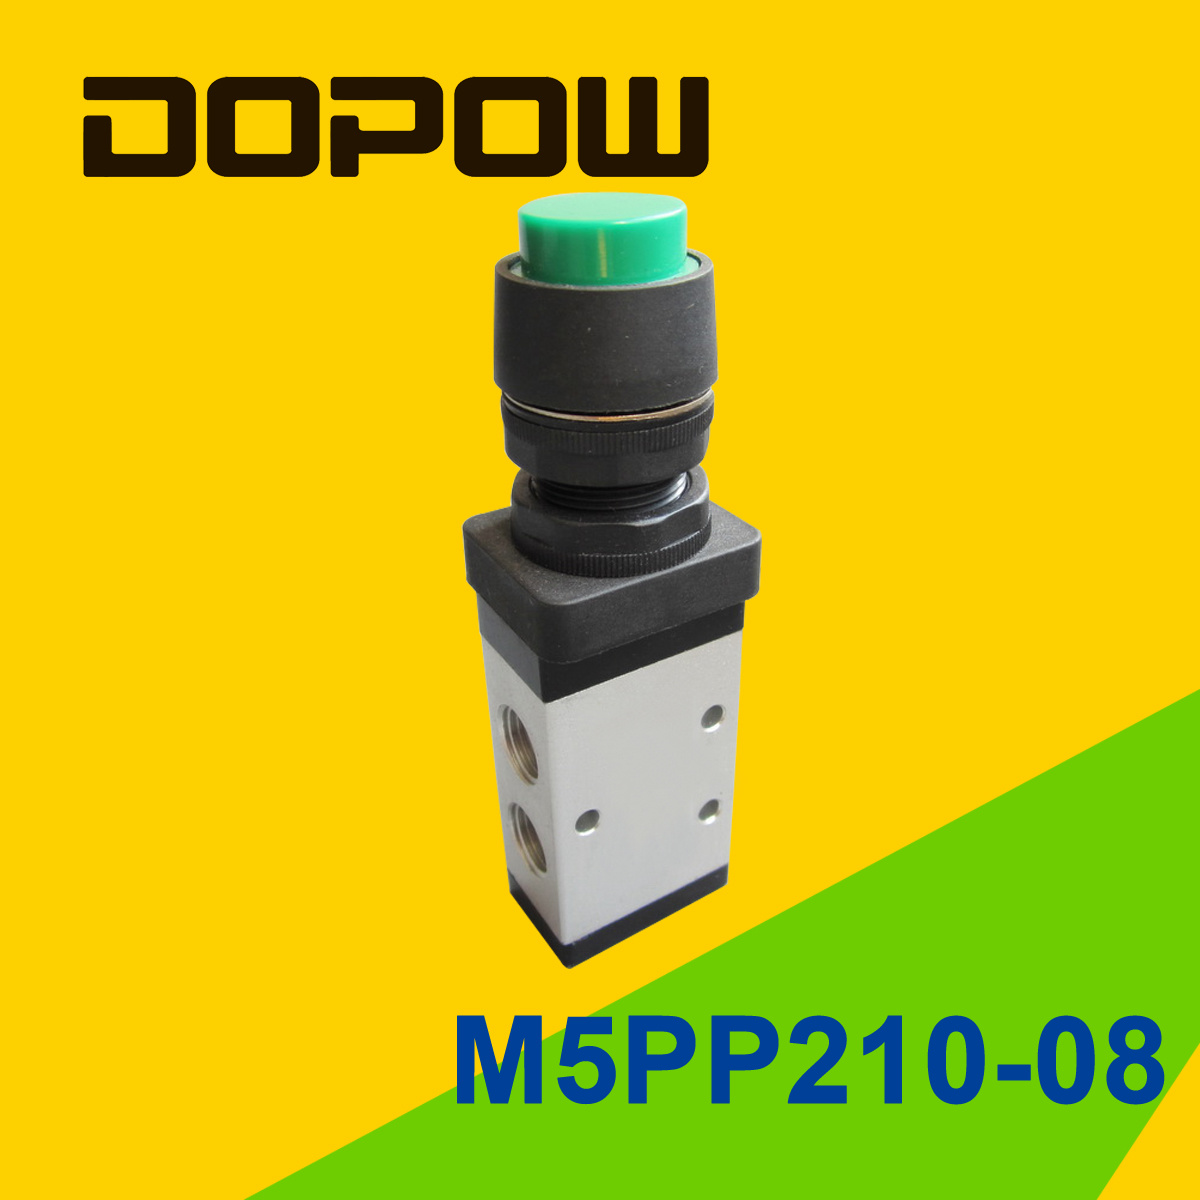 China M5pp210 08 Latching Manual Mechanical Valve 2 Position 5 Way Switch Mechanism Control